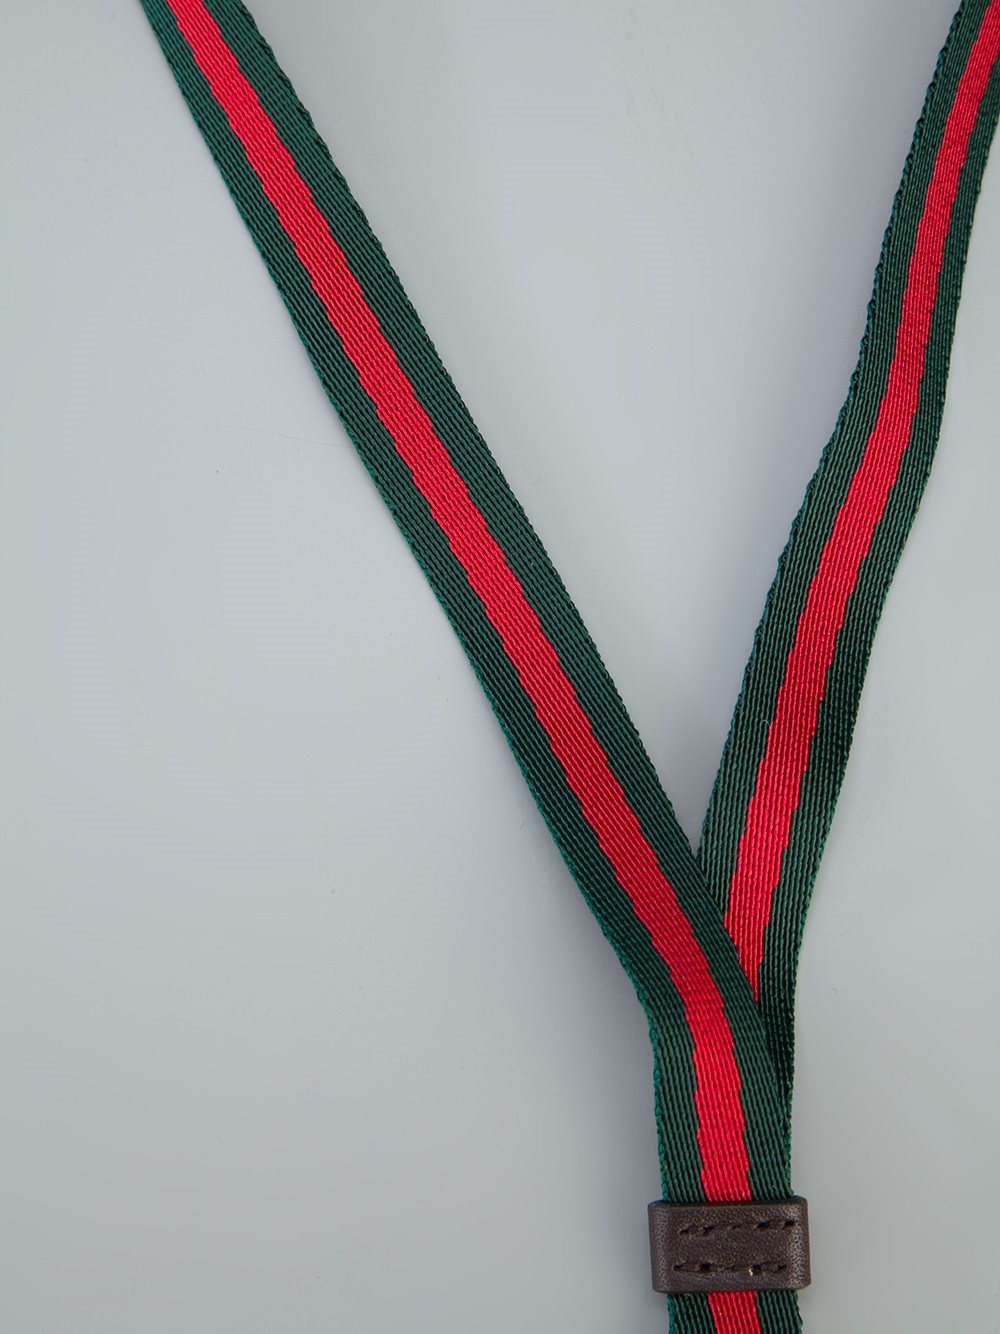 Gucci Long Branded Keychain in Red for Men - Lyst